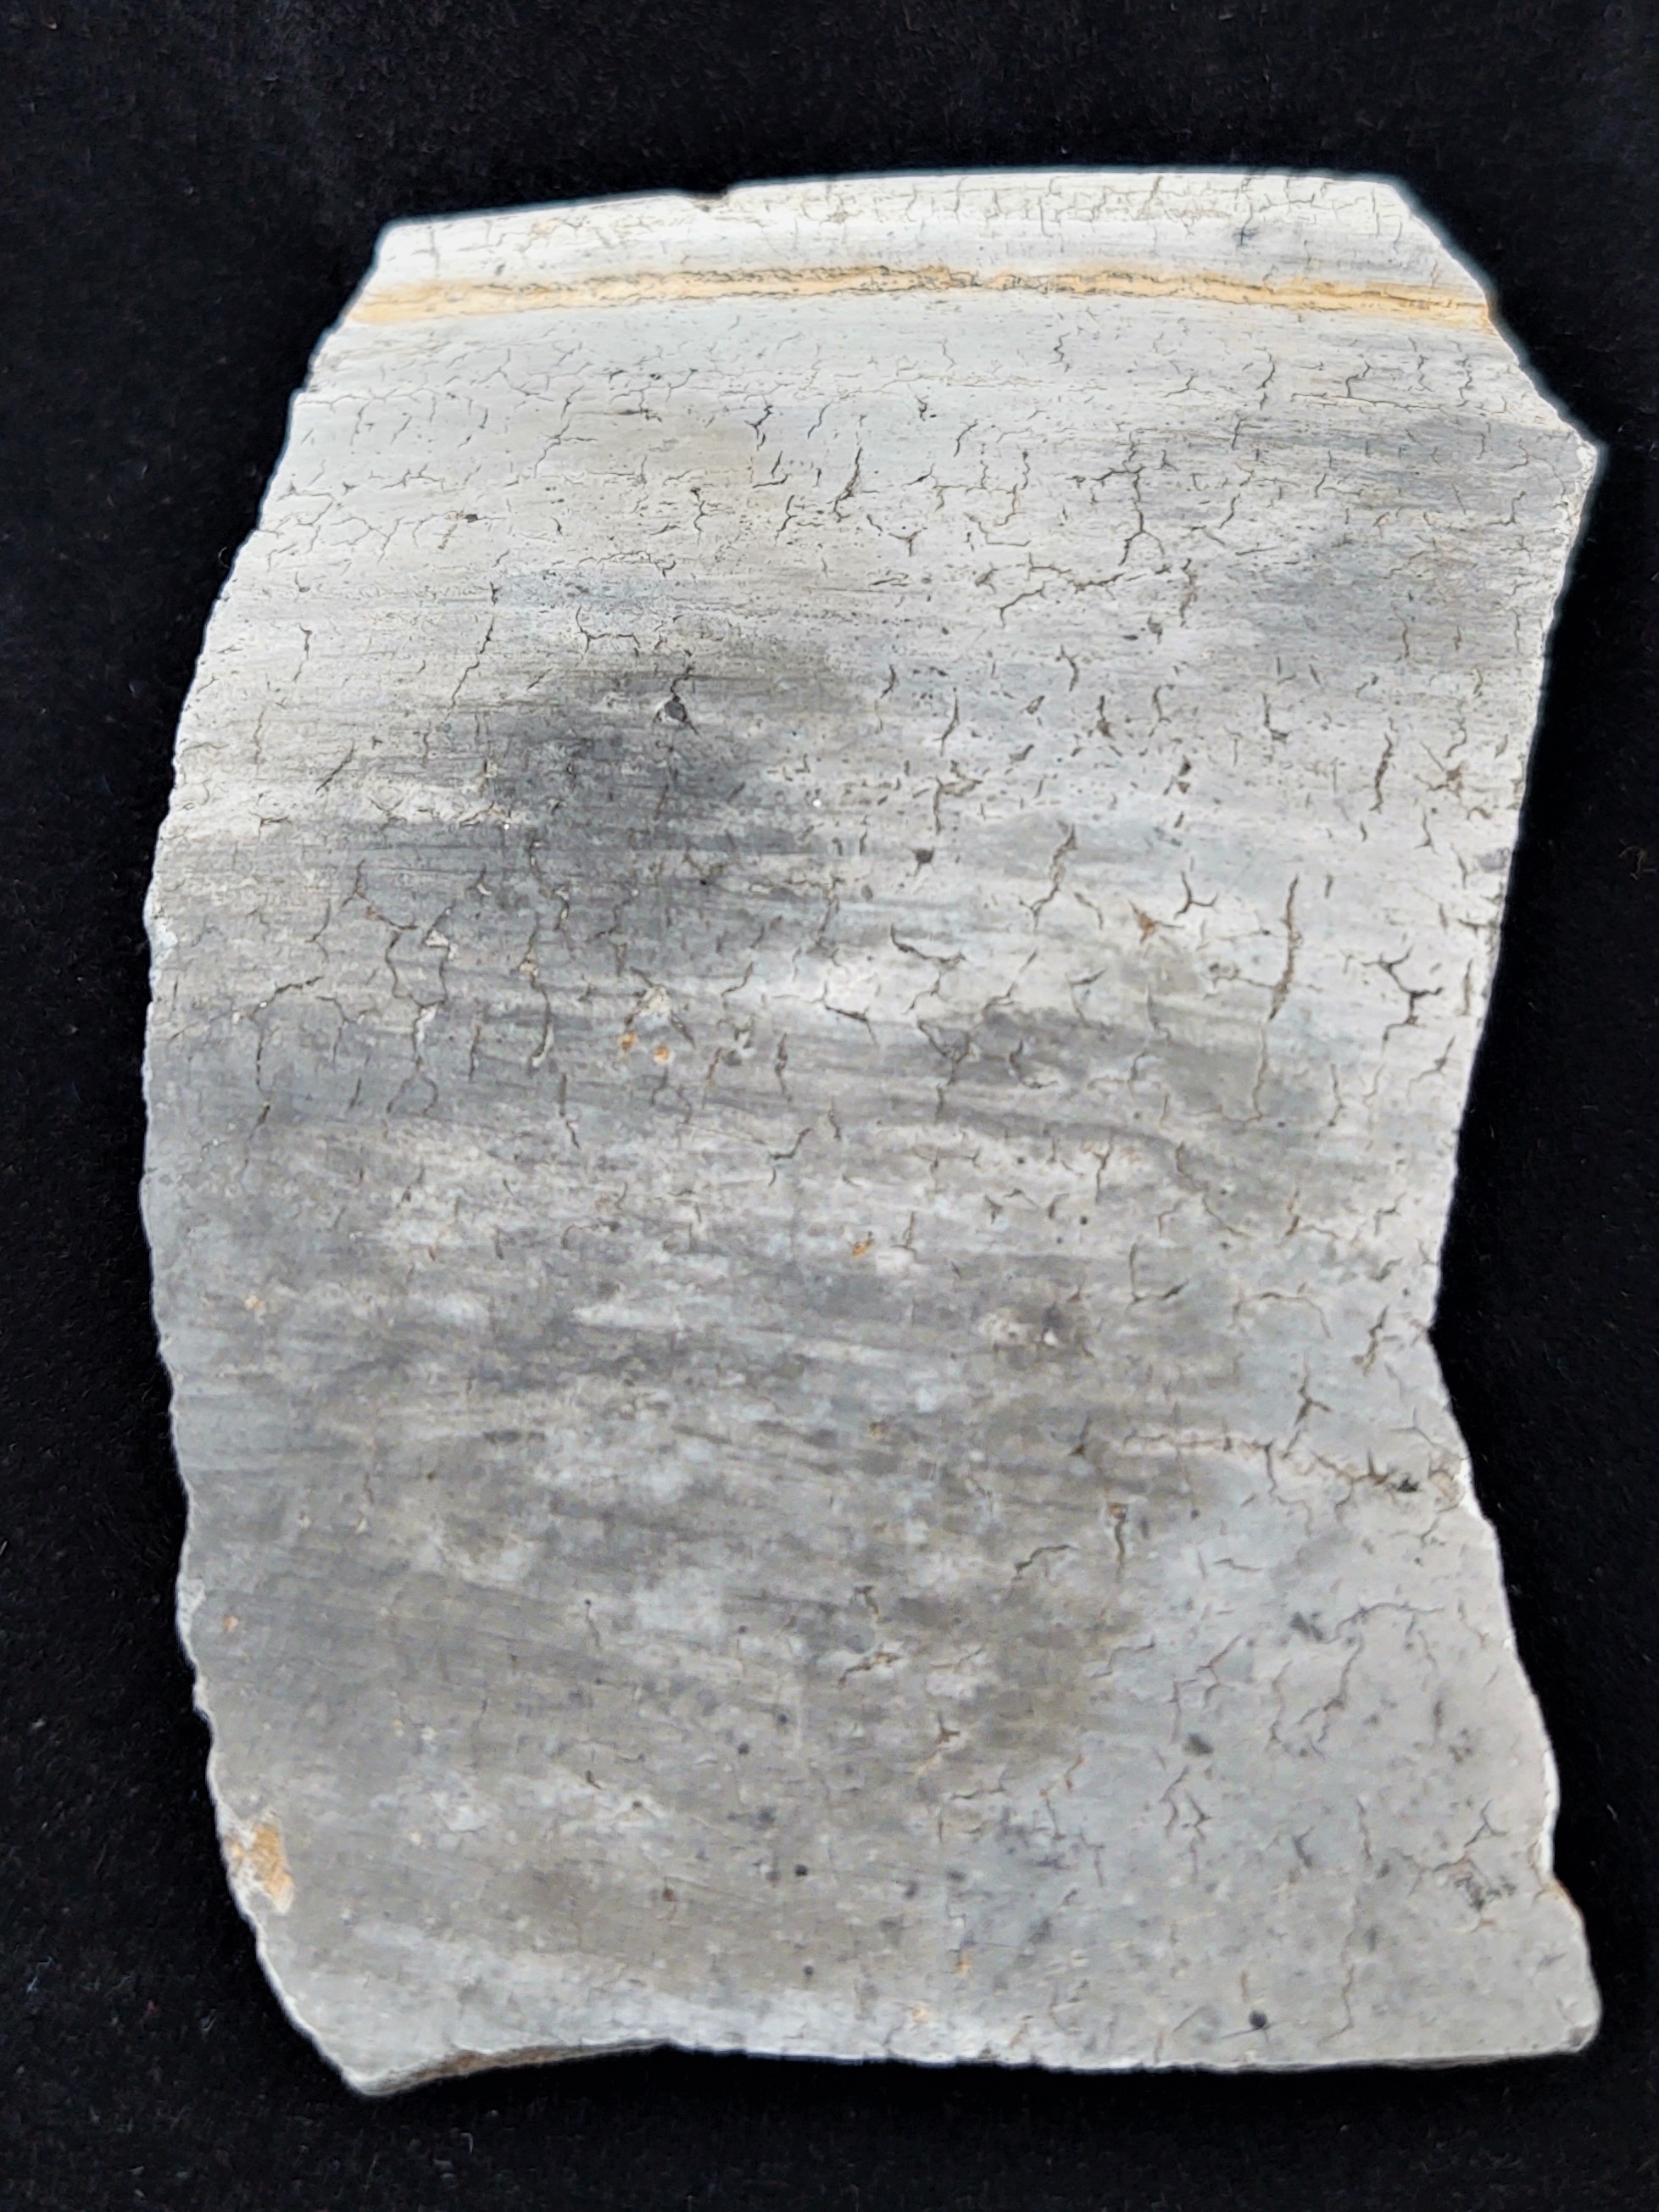 The back of the pottery sherd